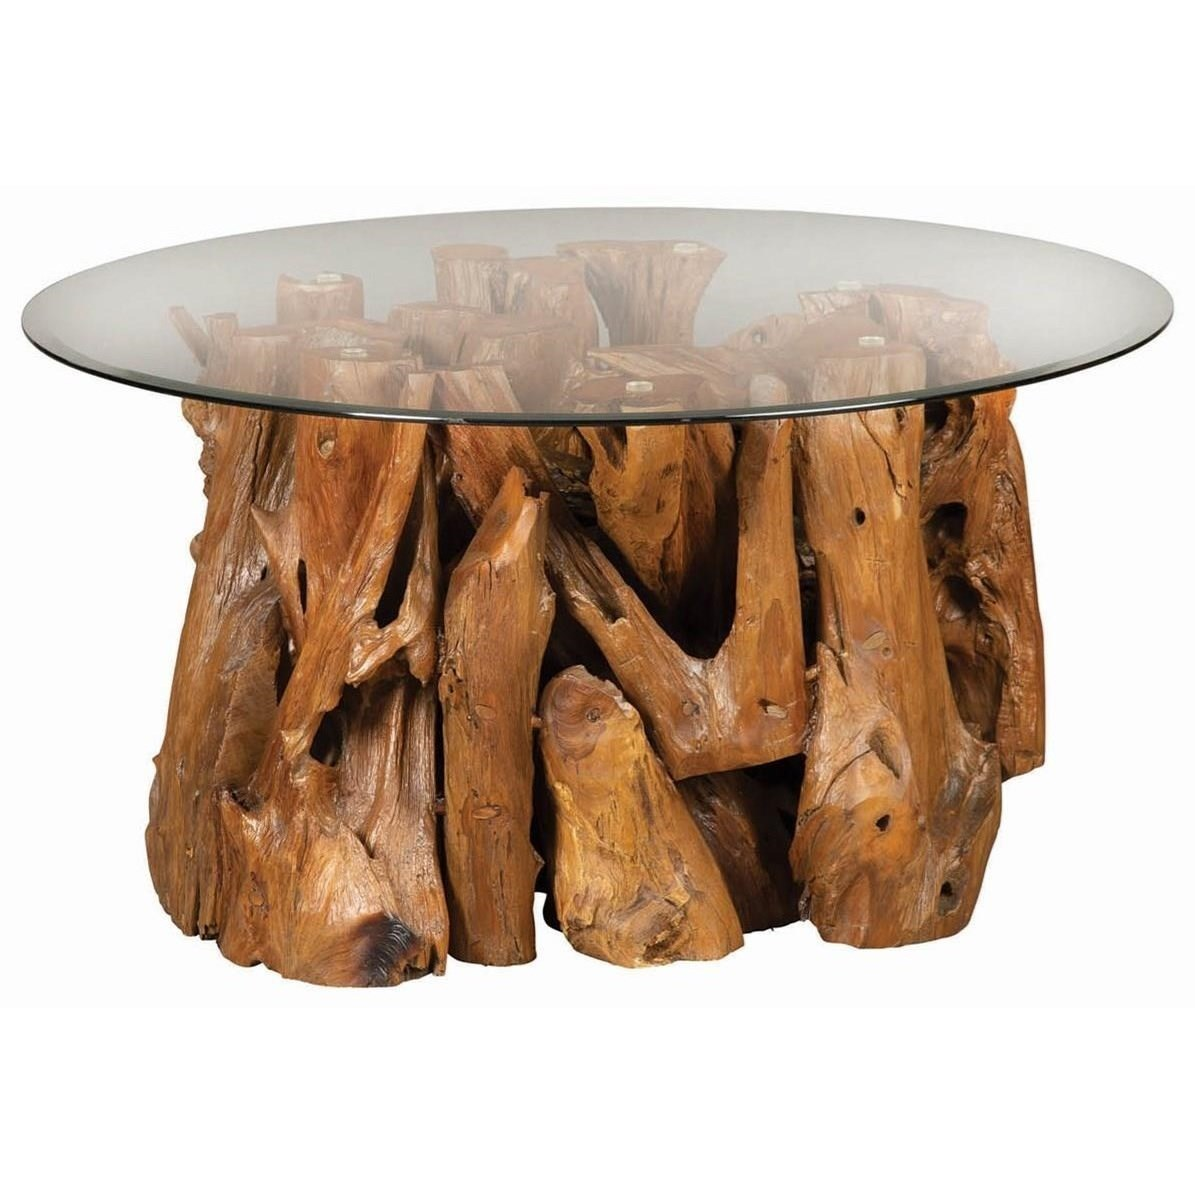 721668 Rustic Teak Root Coffee Table With Glass Top By Scott Living